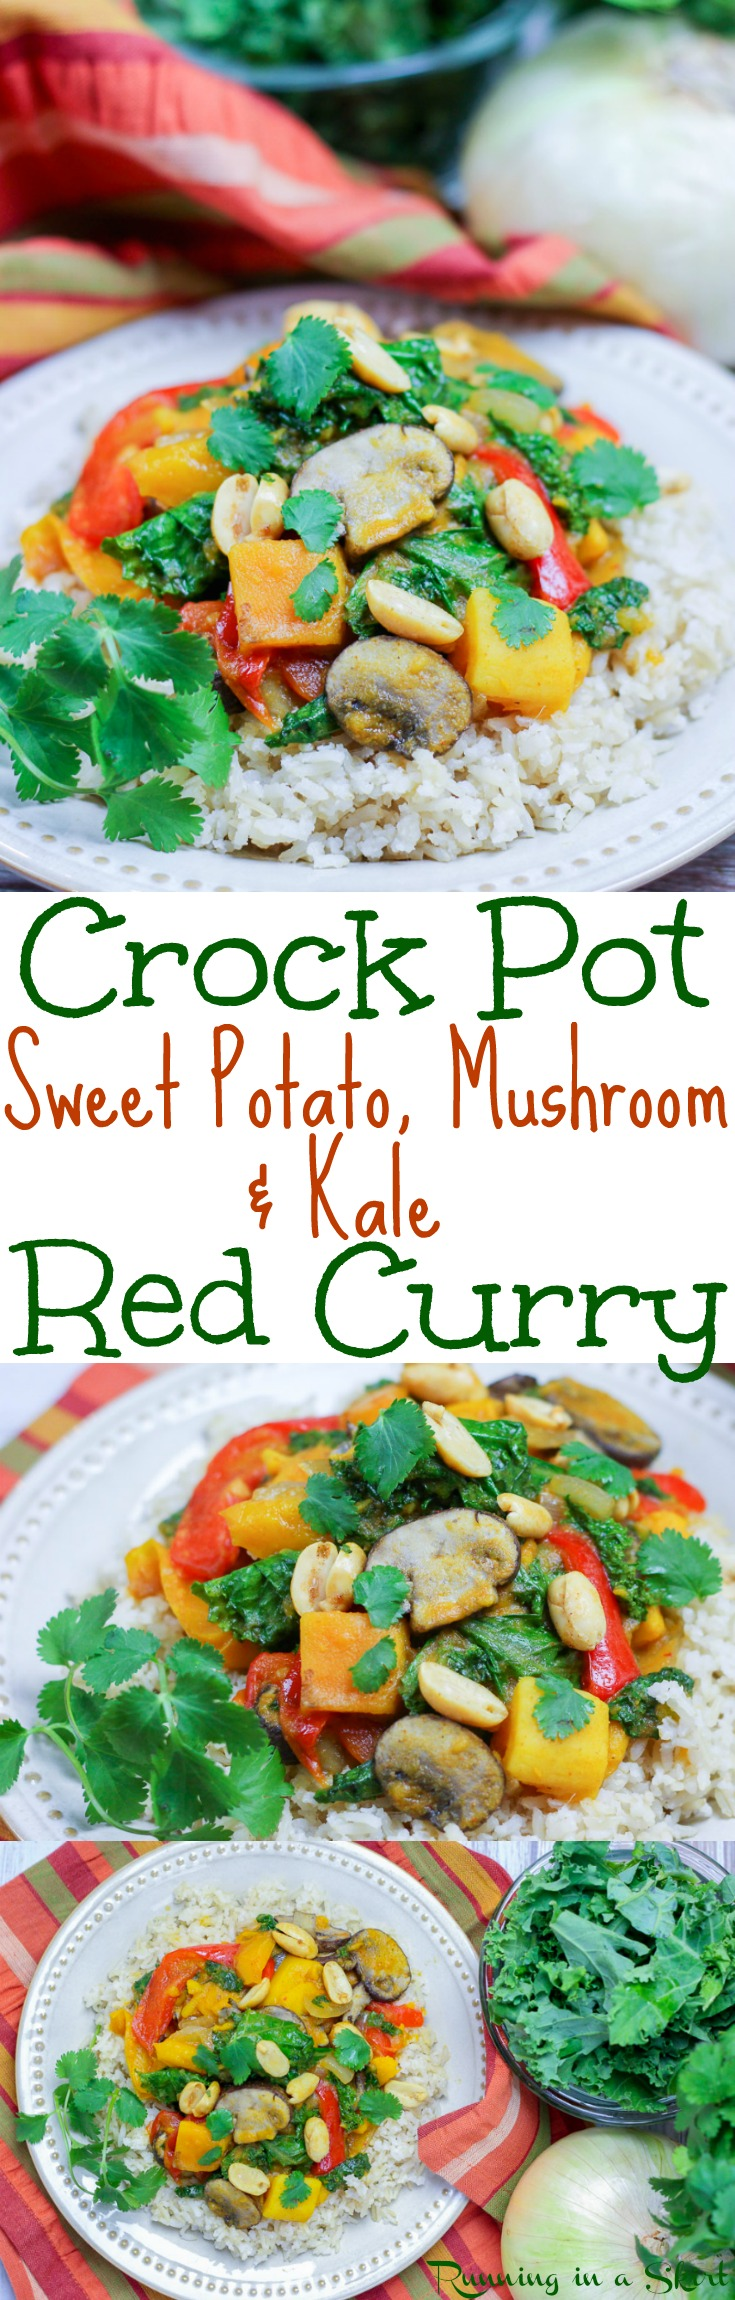 Vegetarian Crock Pot Curry recipe - with coconut milk, sweet potato, mushrooms & kale. Thai takeout flavors at home in a crockpot meals - easy, healthy and perfect for families. Simple, clean eating and low carb without the rice. Great for vegans and gluten free. / Running in a Skirt via @juliewunder